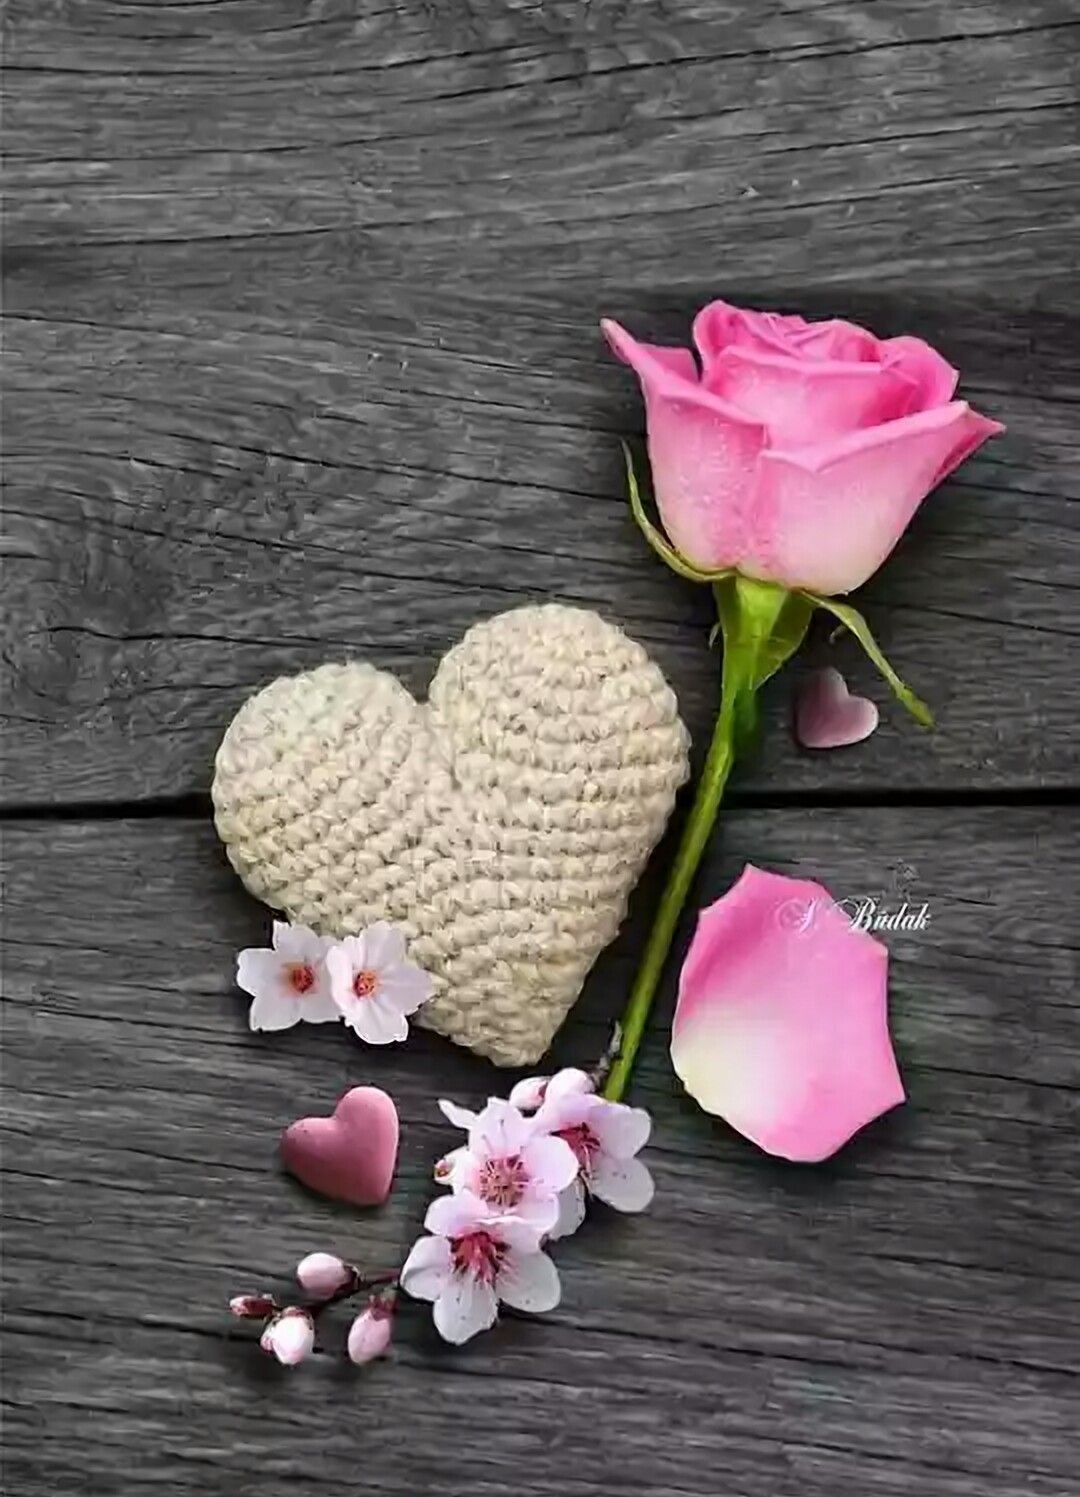 Pin by gnl krcaolu on kalp pinterest nice flower colour splash phone wallpapers wallpaper backgrounds nice flower beautiful flowers pretty in pink heart art valentine cards red roses izmirmasajfo Choice Image